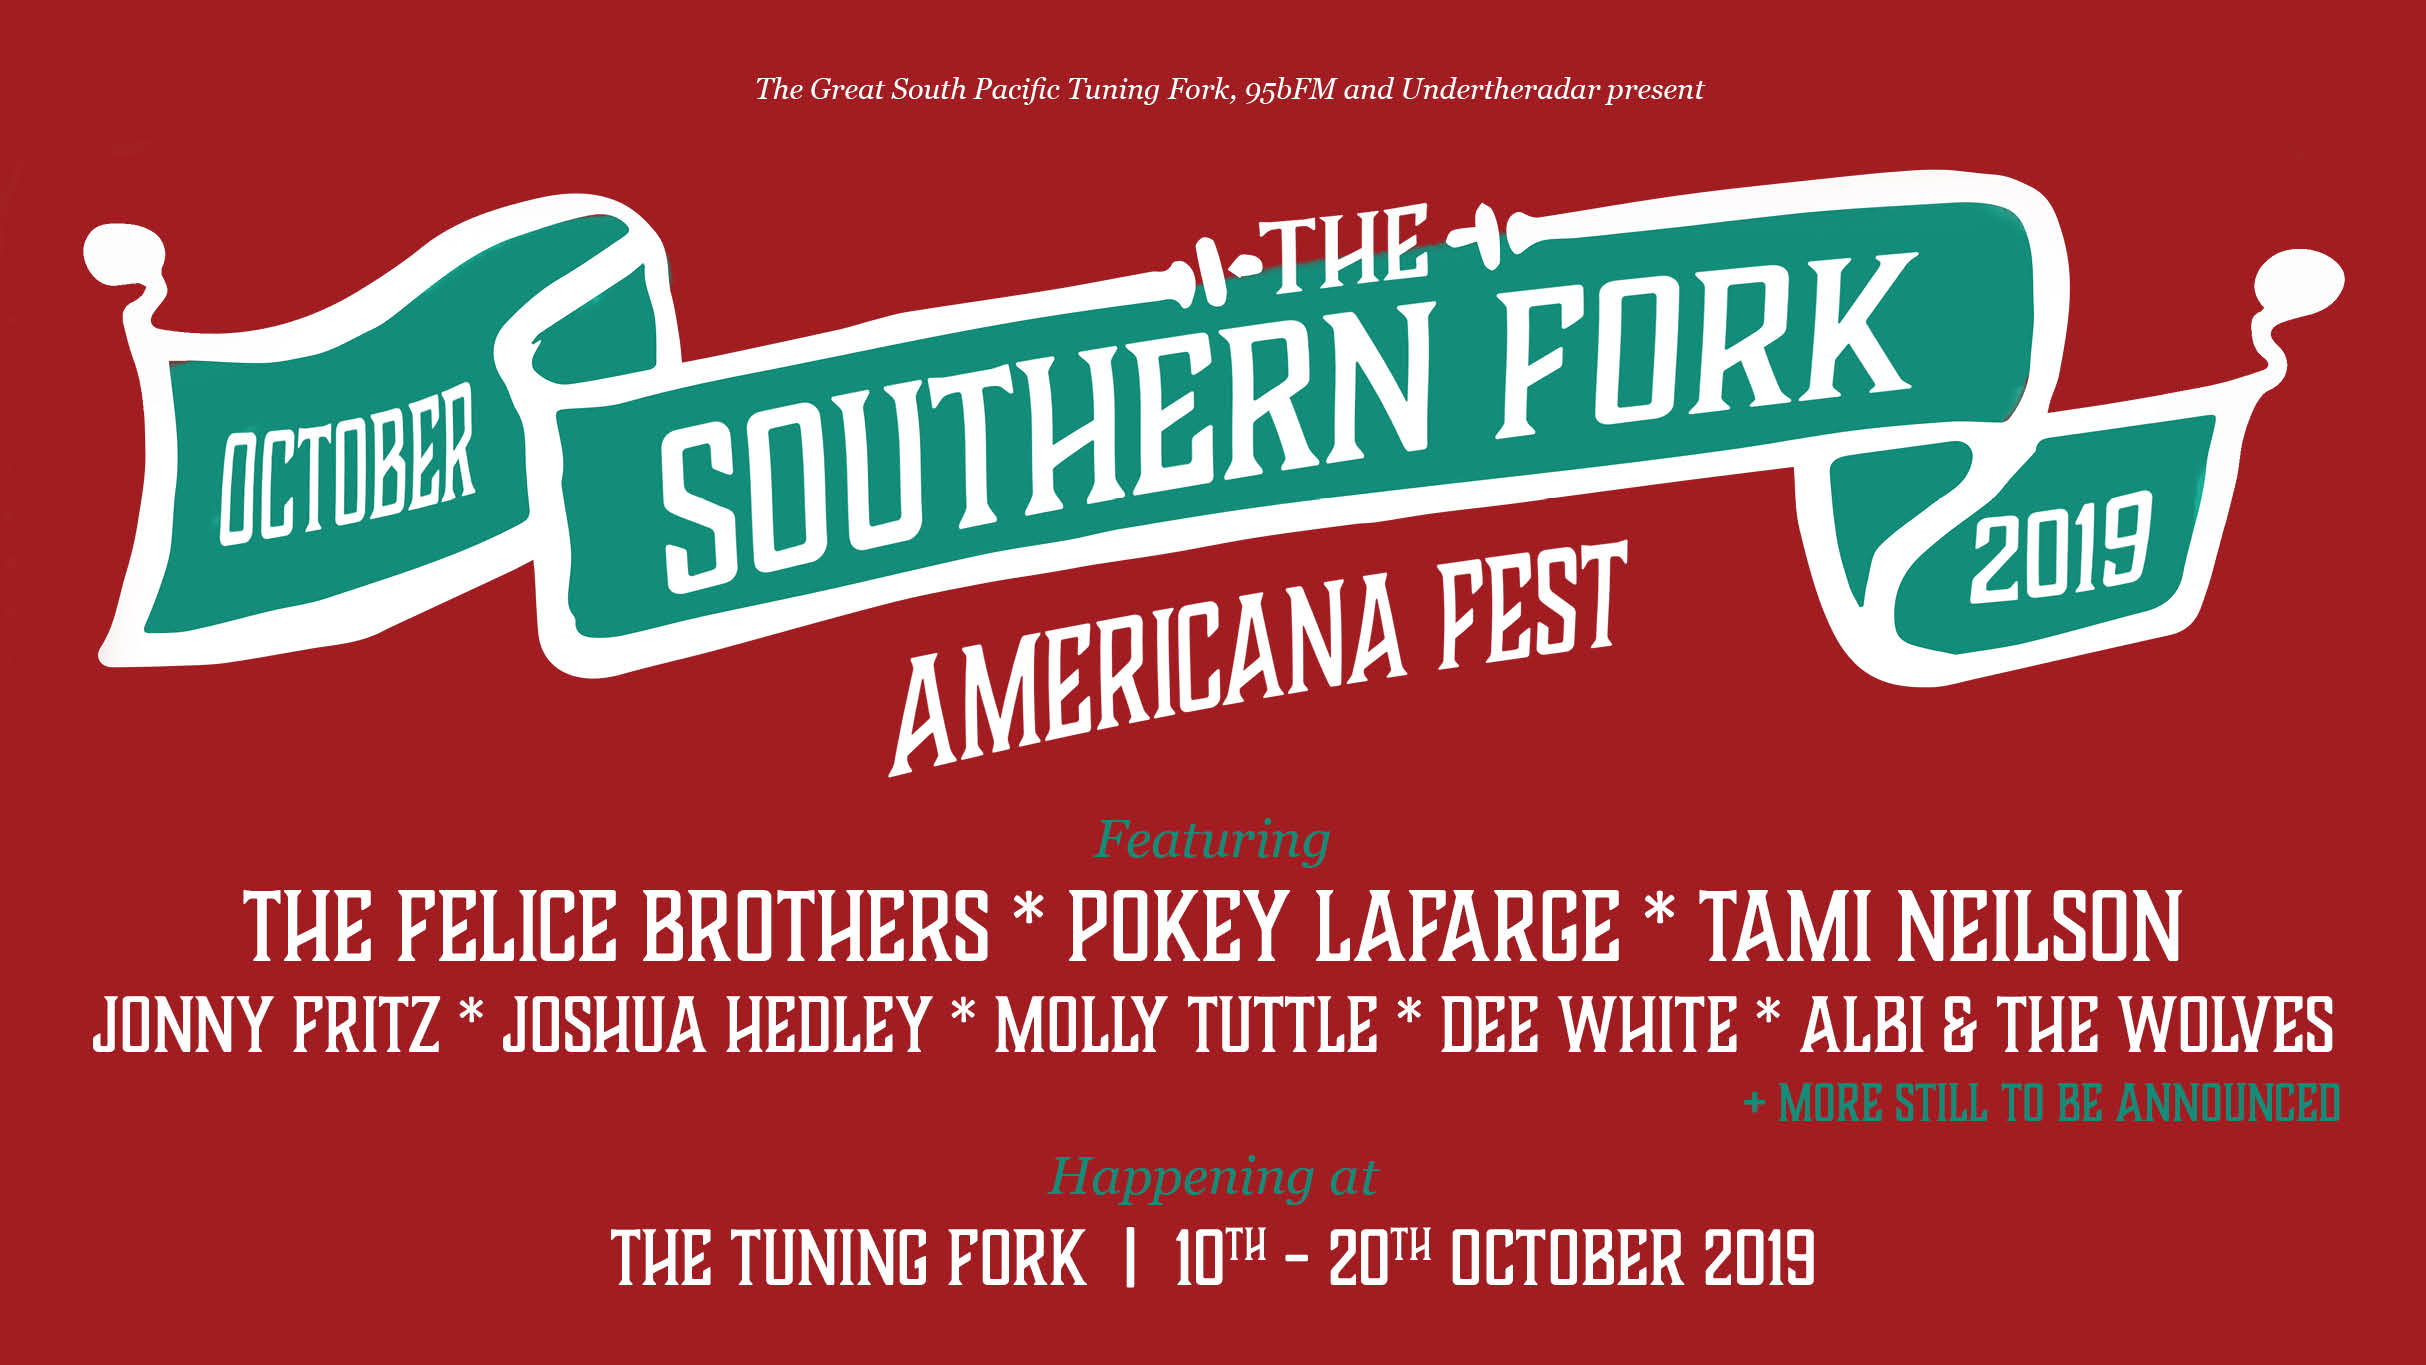 Southern Fork Americana Fest: Molly Tuttle and Dee White